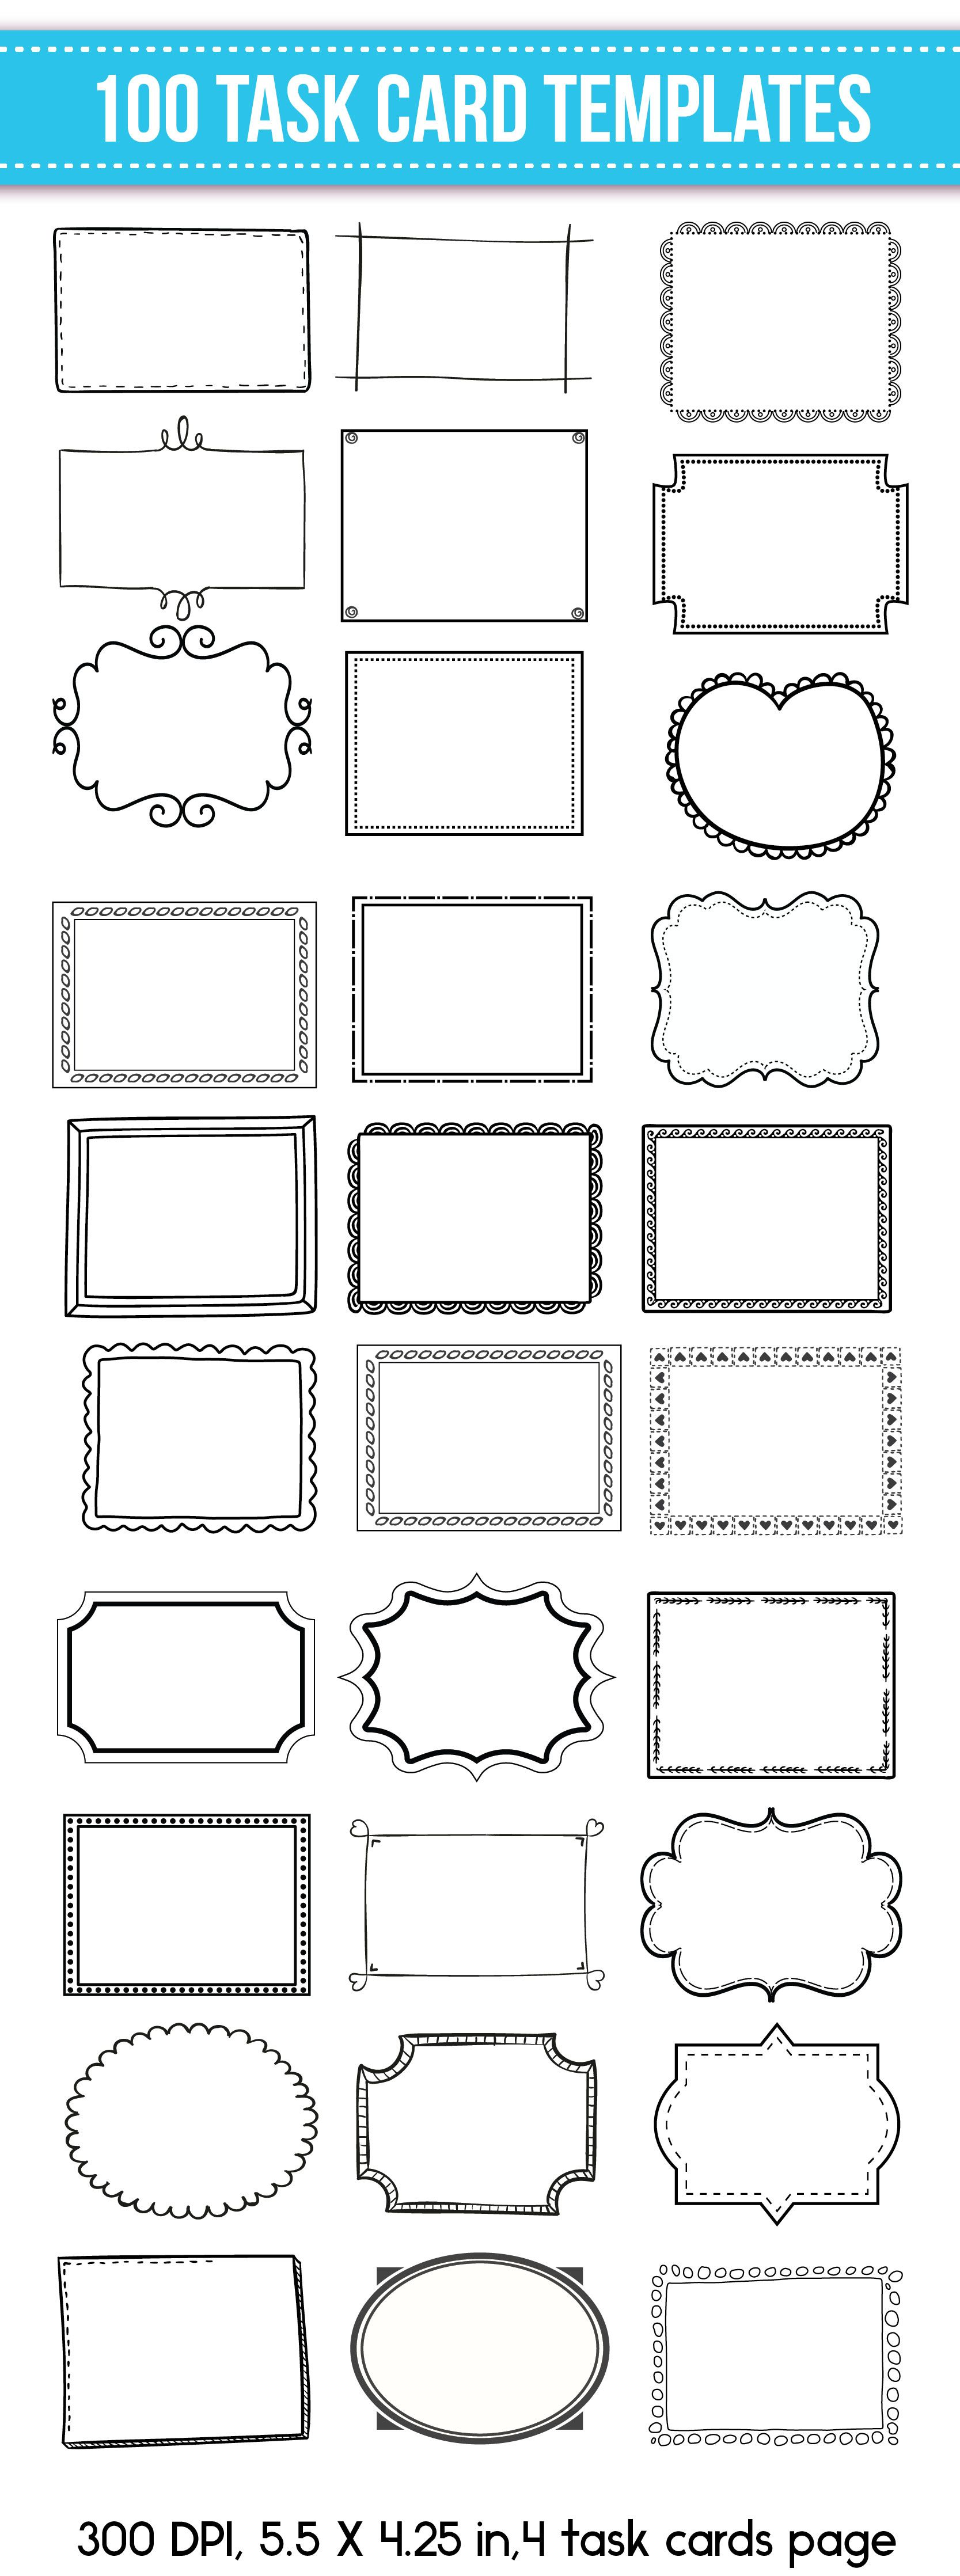 Task Card Templates Editable 100 Task Cards Flash Card Template Card Templates